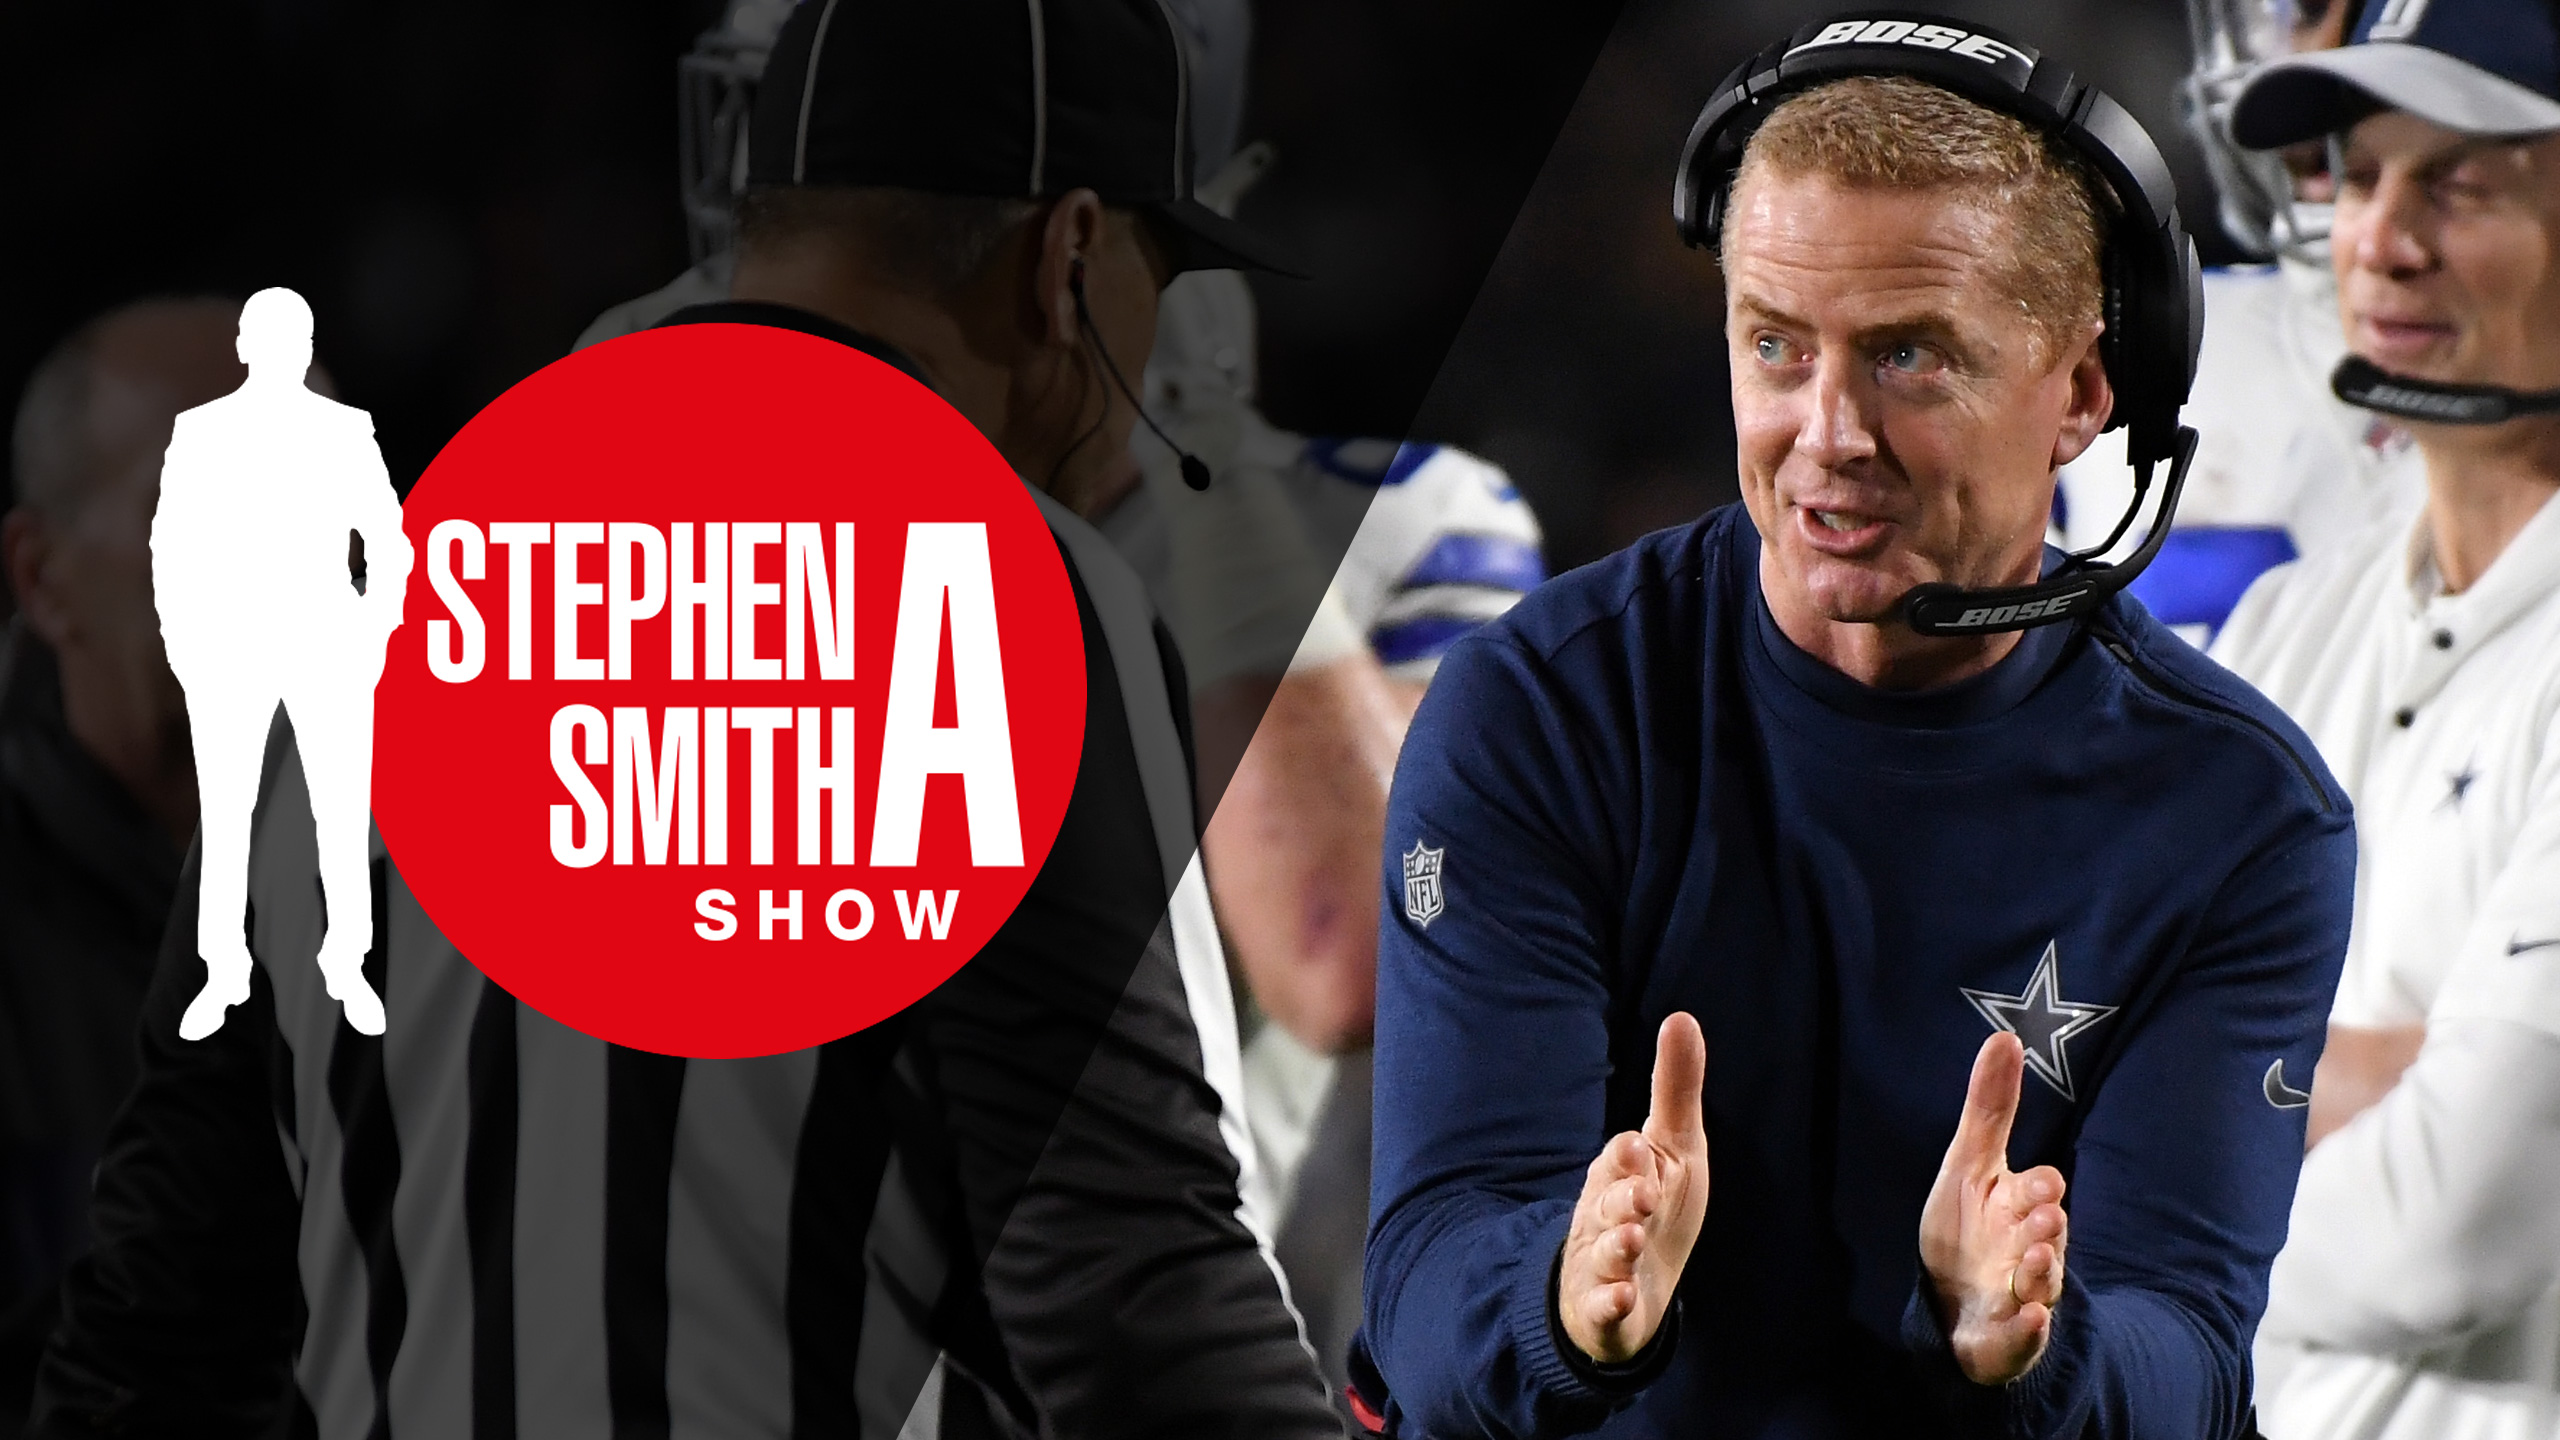 Mon, 1/14 - The Stephen A. Smith Show